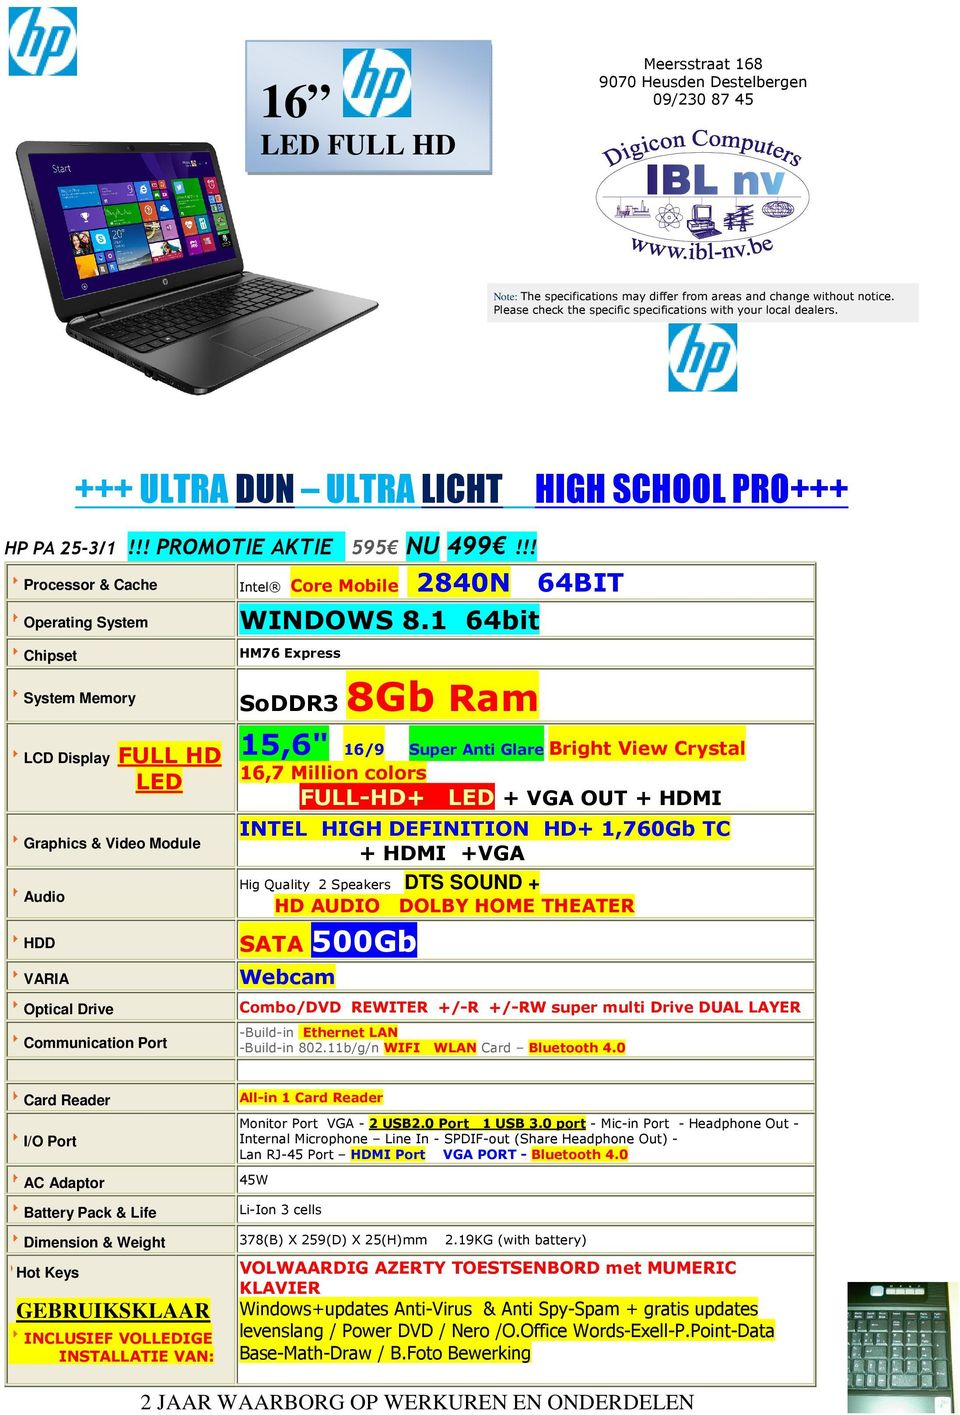 !! Processor & Cache Operating System Chipset System Memory Intel Core Mobile 2840N 64BIT WINDOWS 8.